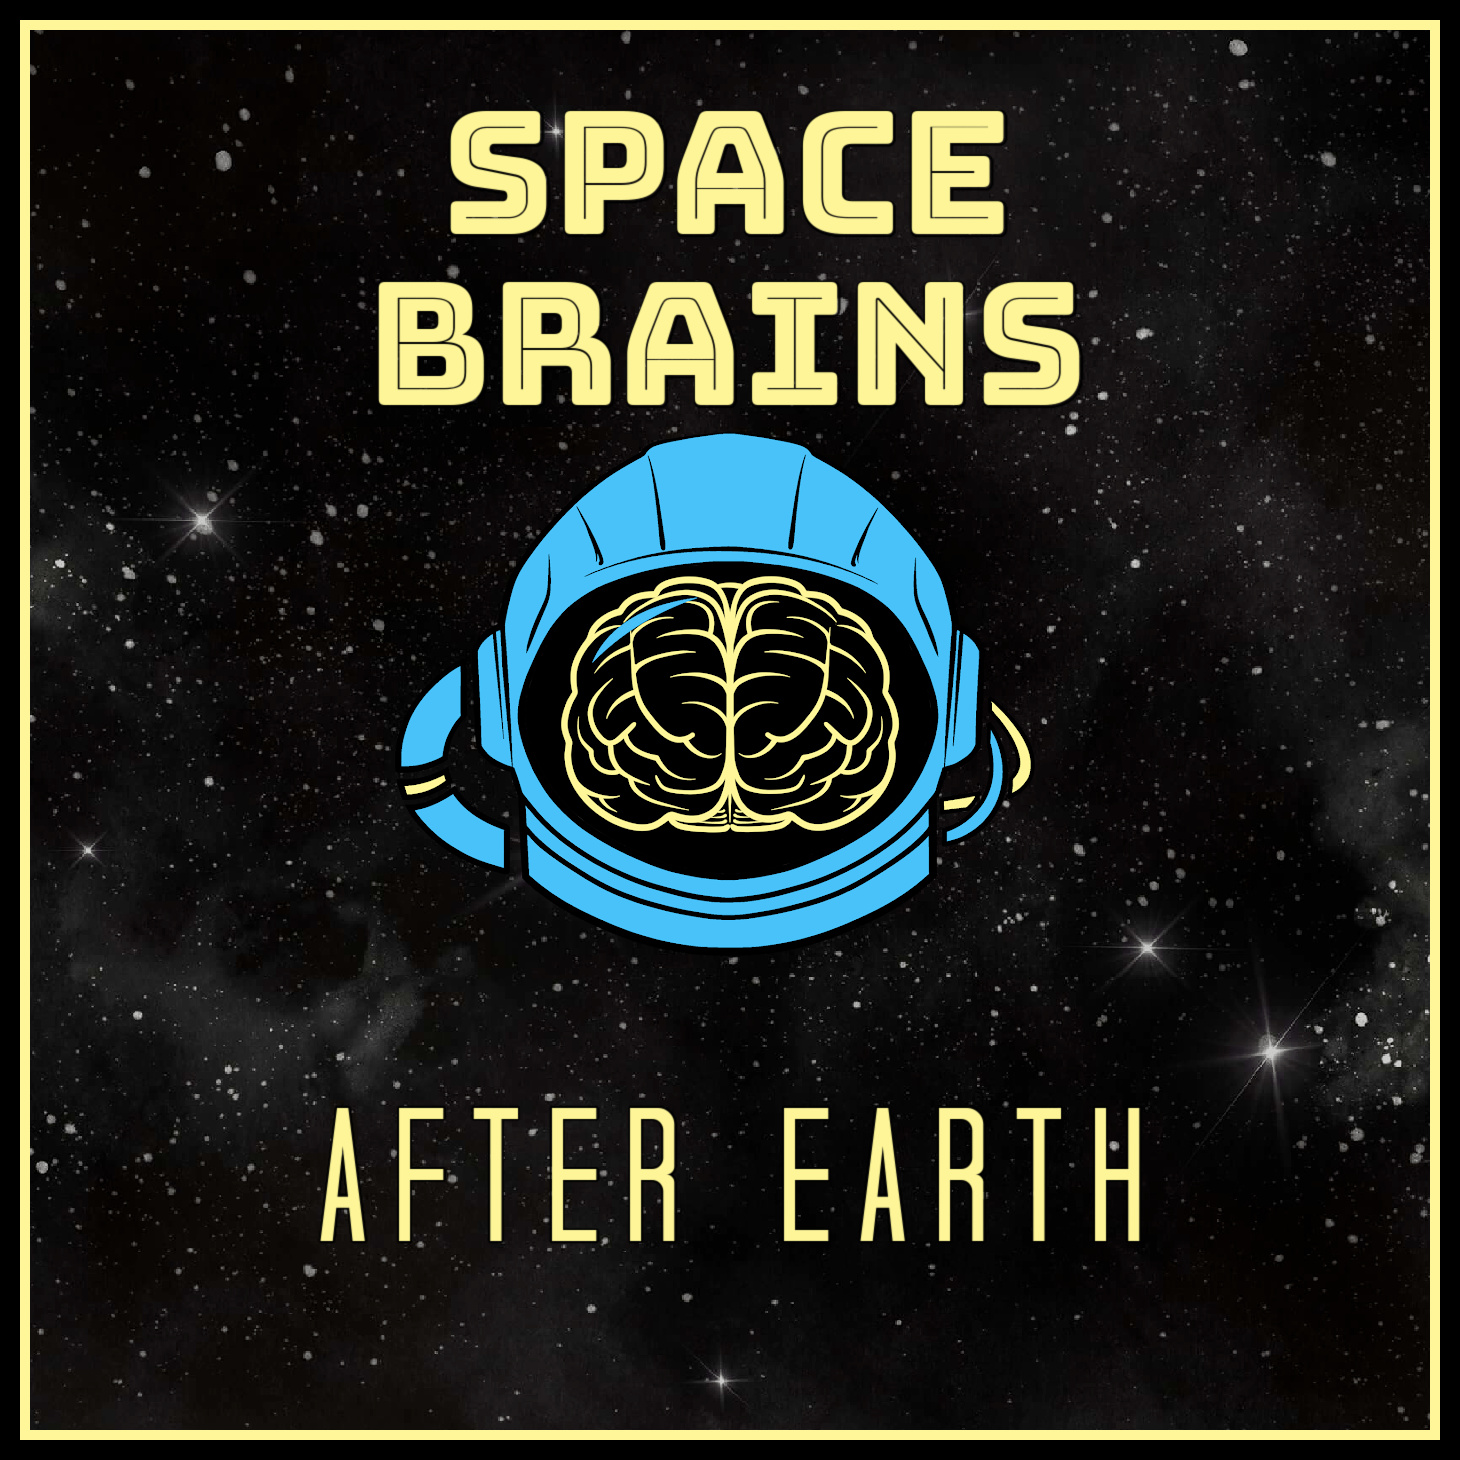 Space Brains - 14 - After Earth